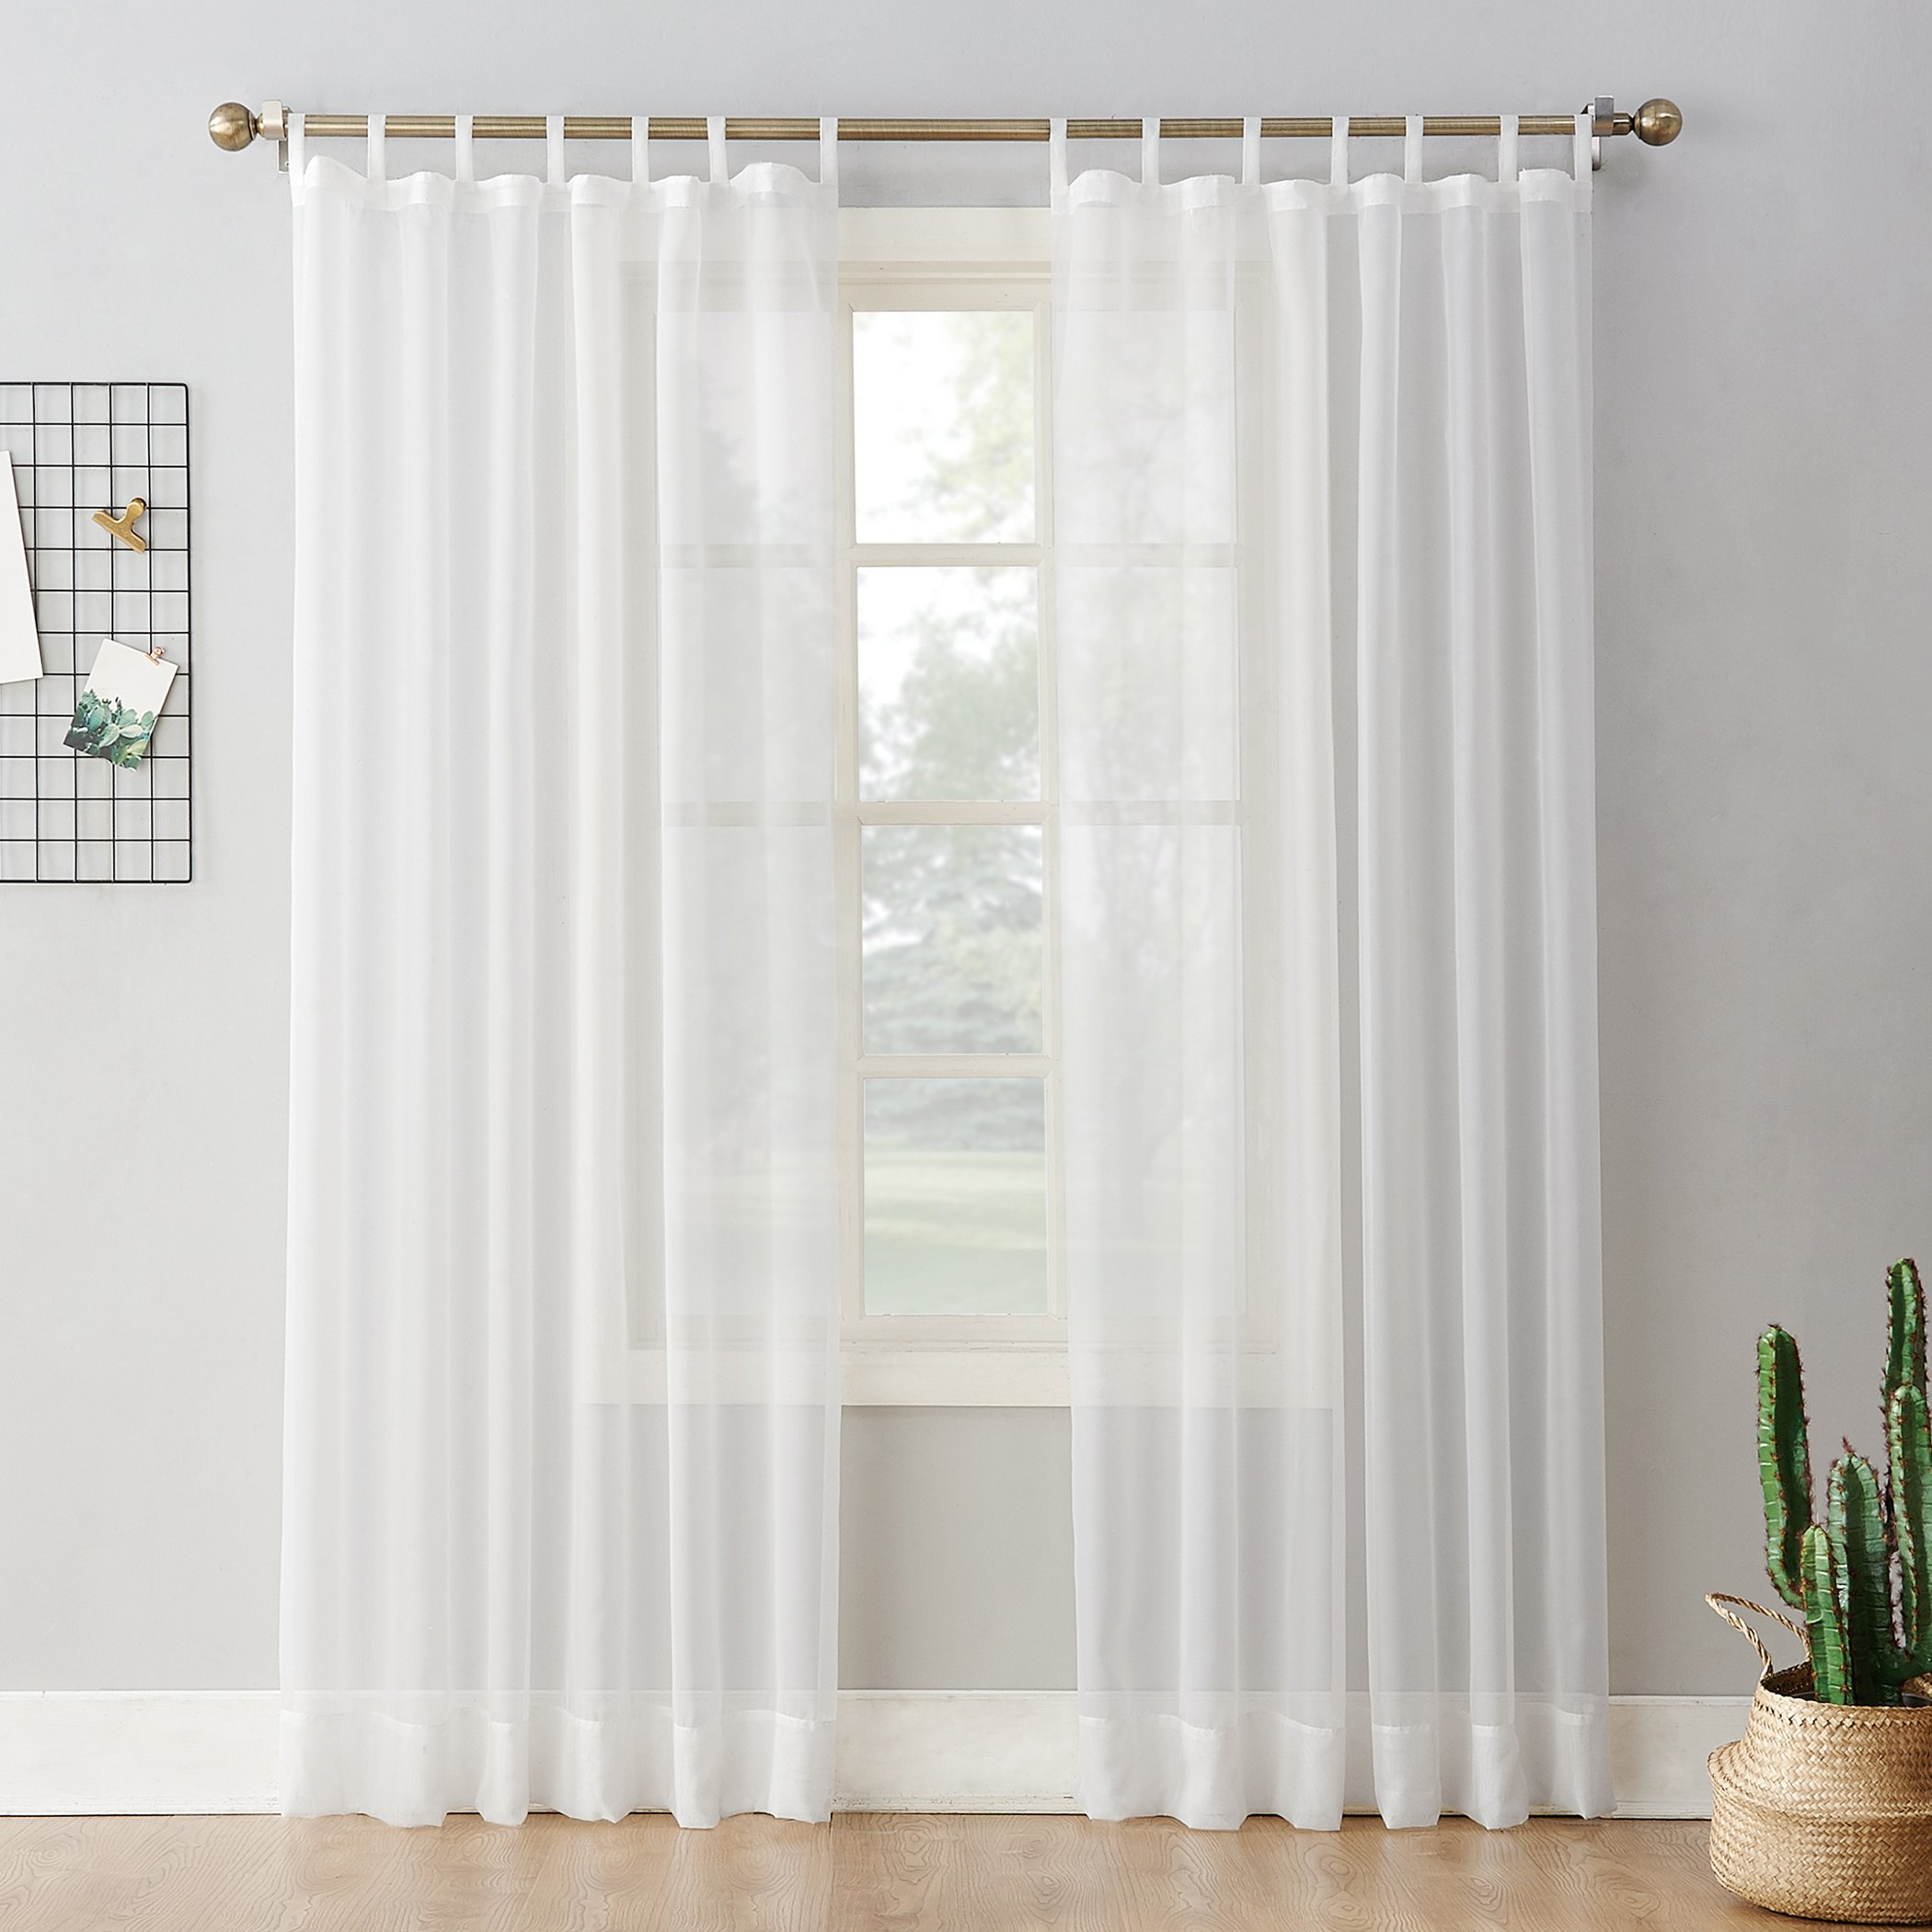 Amazon Com No 918 52457 Emily Sheer Voile Tab Top Curtain Panel 59 X 95 White Home Kitchen